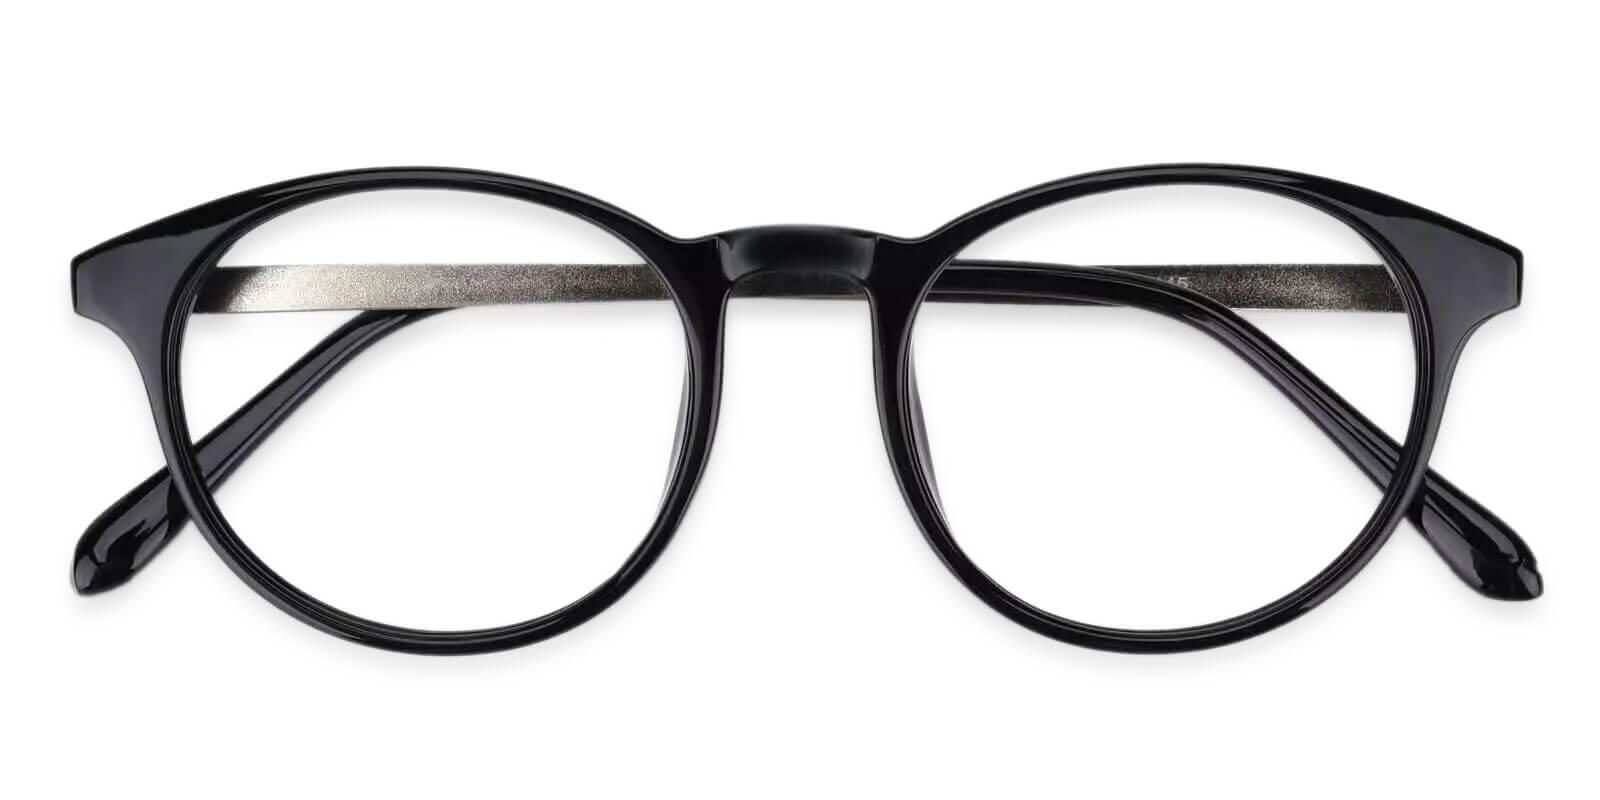 Wilcox Black TR Eyeglasses , UniversalBridgeFit Frames from ABBE Glasses